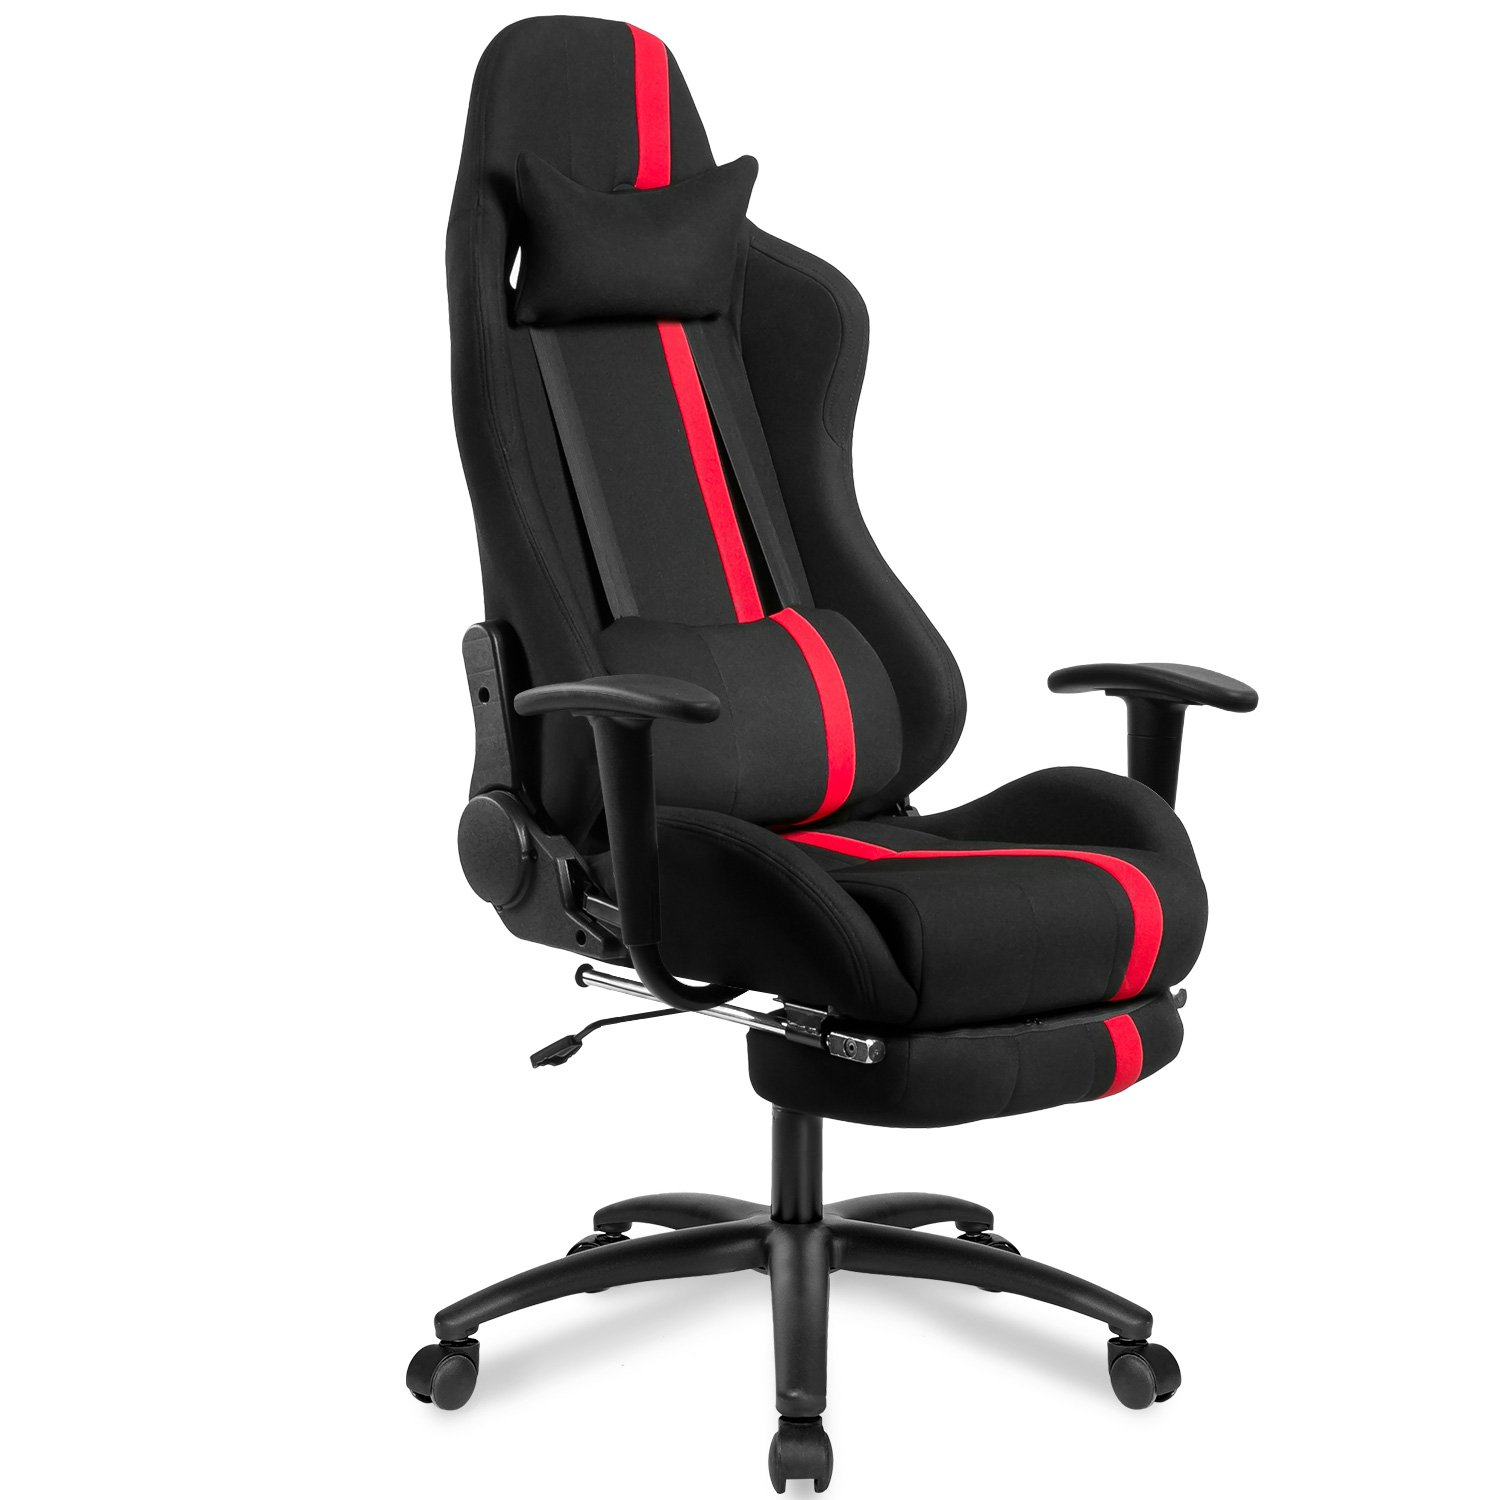 Merax High Back Executive Mesh Racing Chair Ergonomic Series Reclining Office Chair with Back Support and Footrest (red)